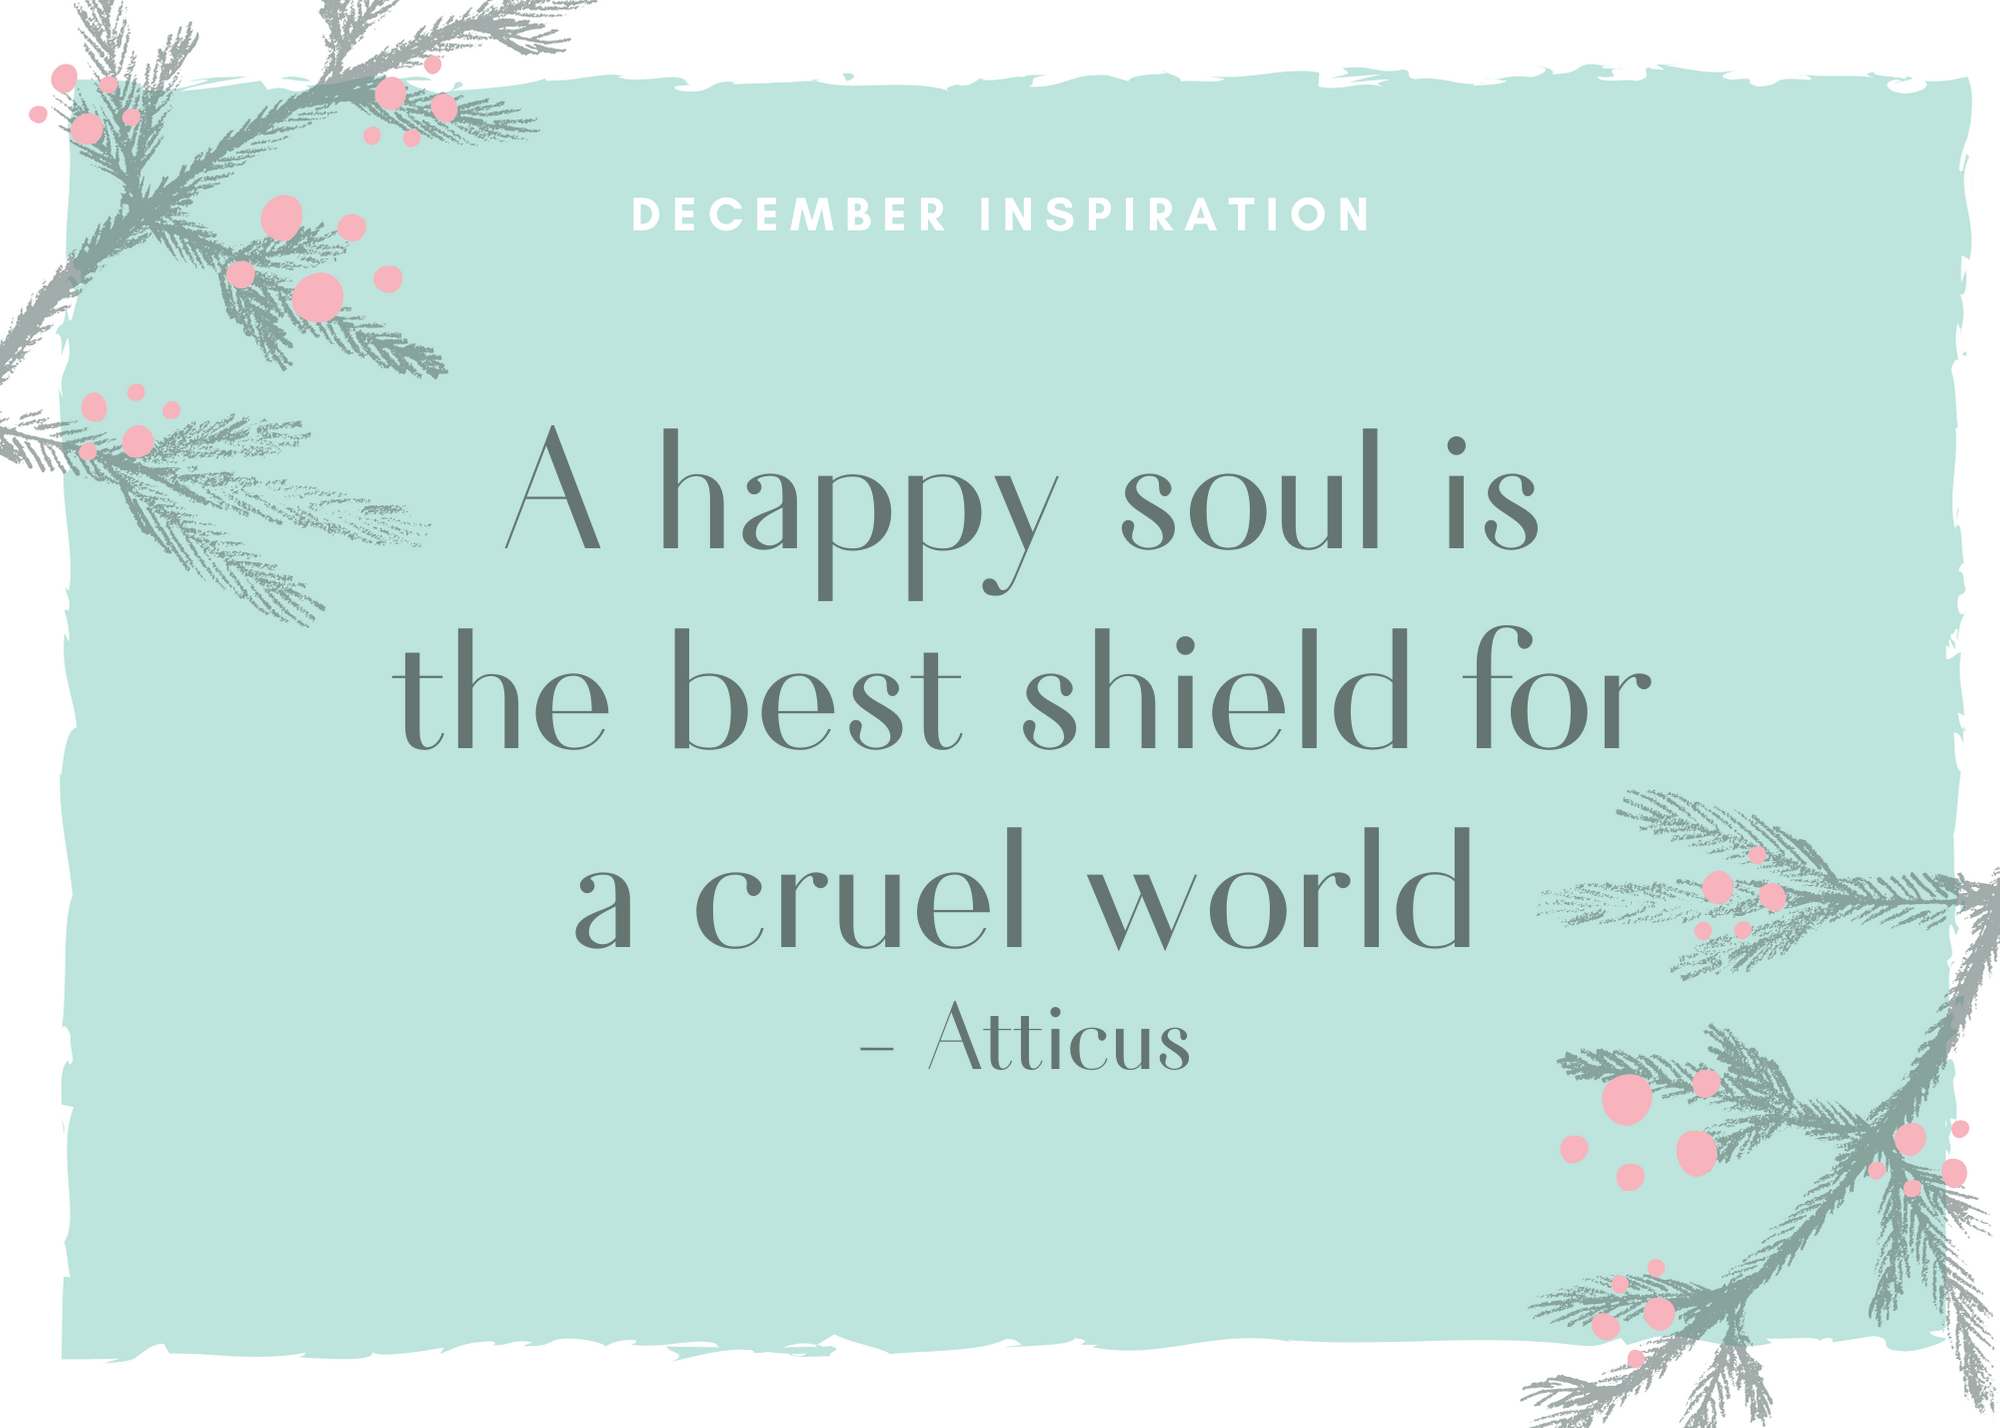 A happy soul is the best shield for a cruel world Atticus